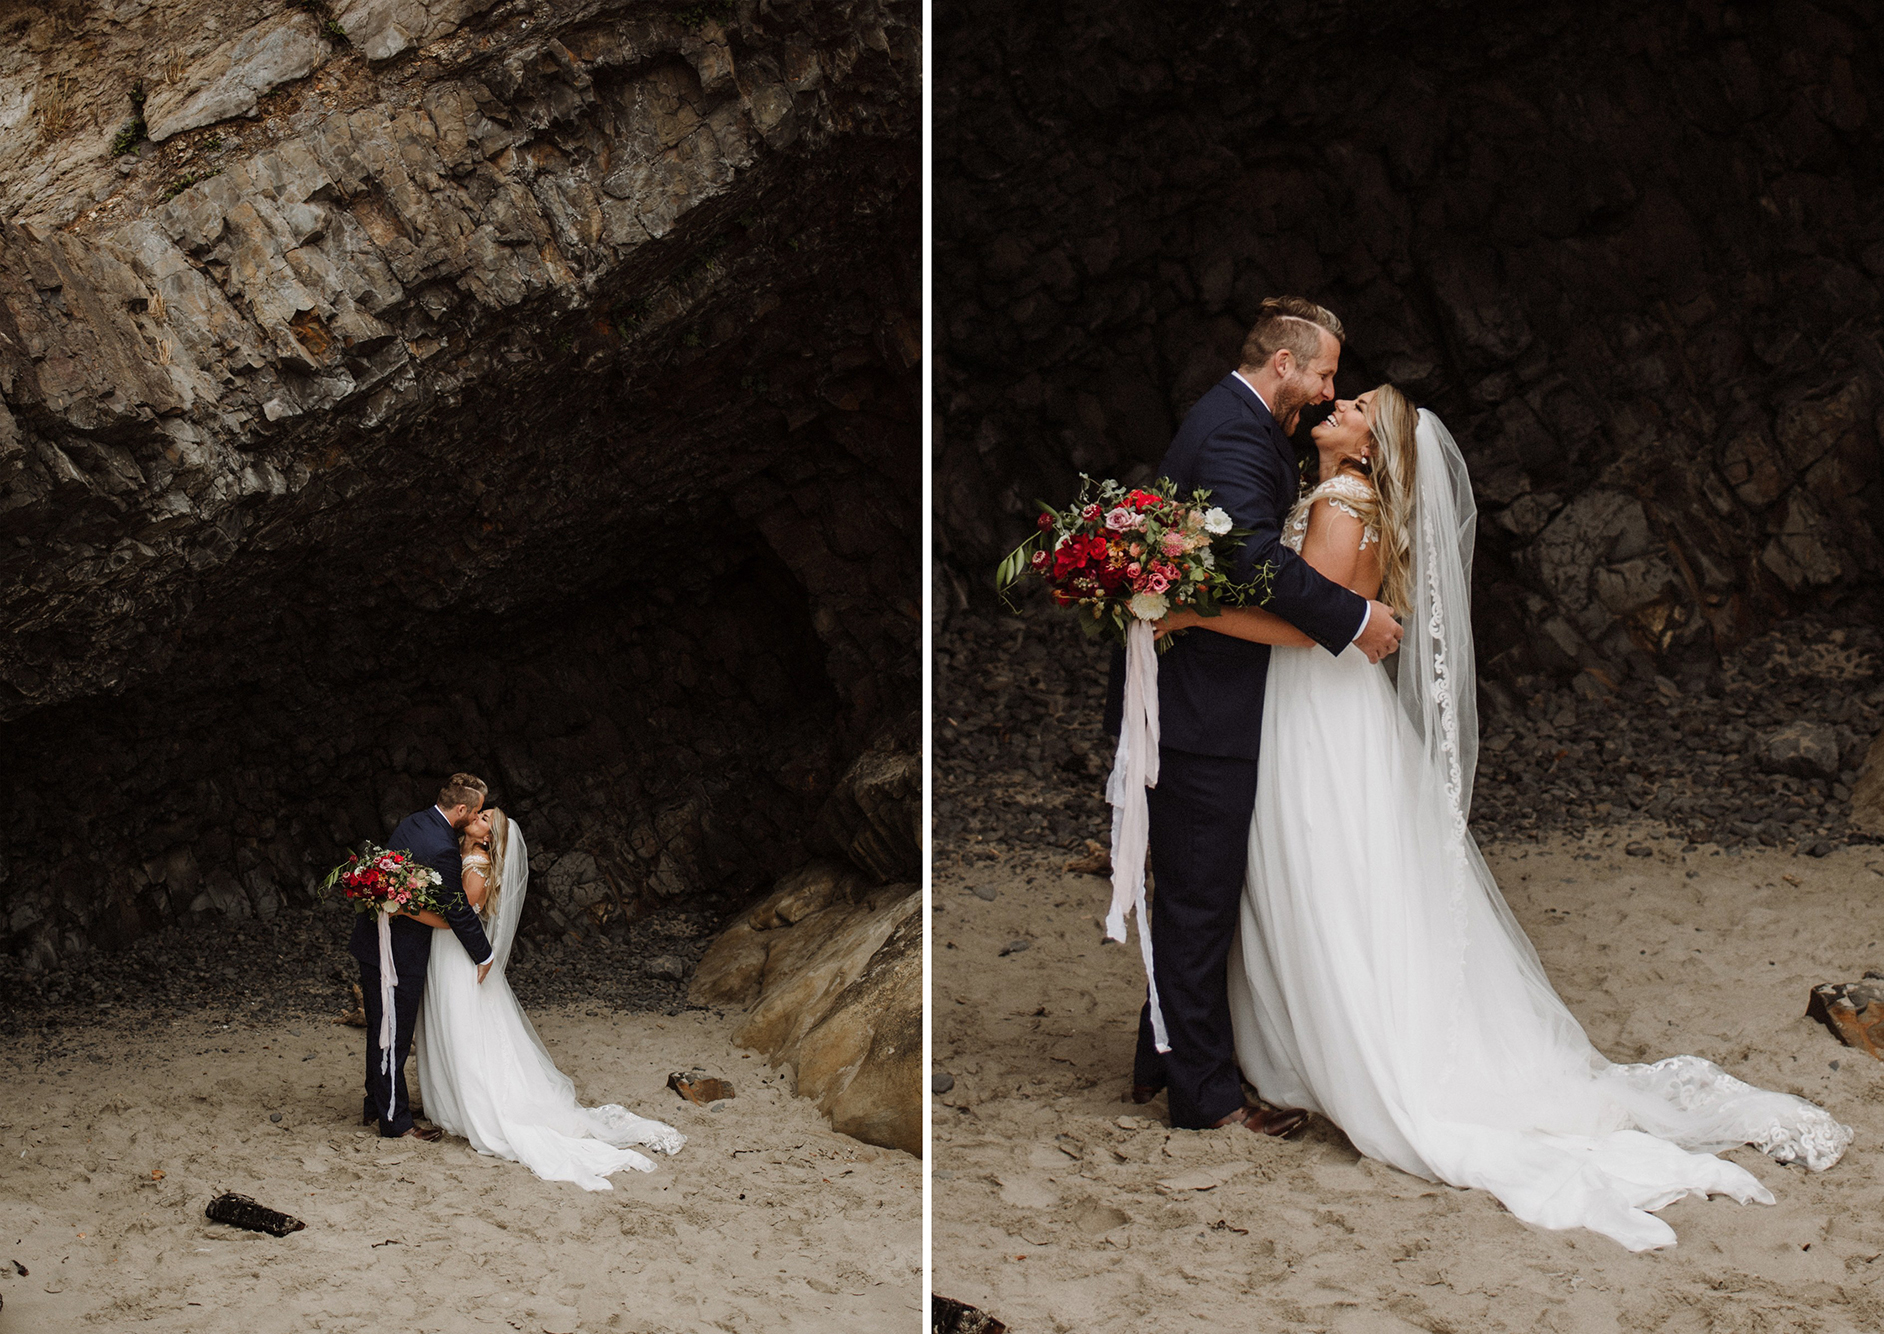 Oregon Coast Elopement, Hug Point Elopement, Cannon Beach Elopement, Elopement Photographer, Destination Wedding Photographer, The Colagrossis